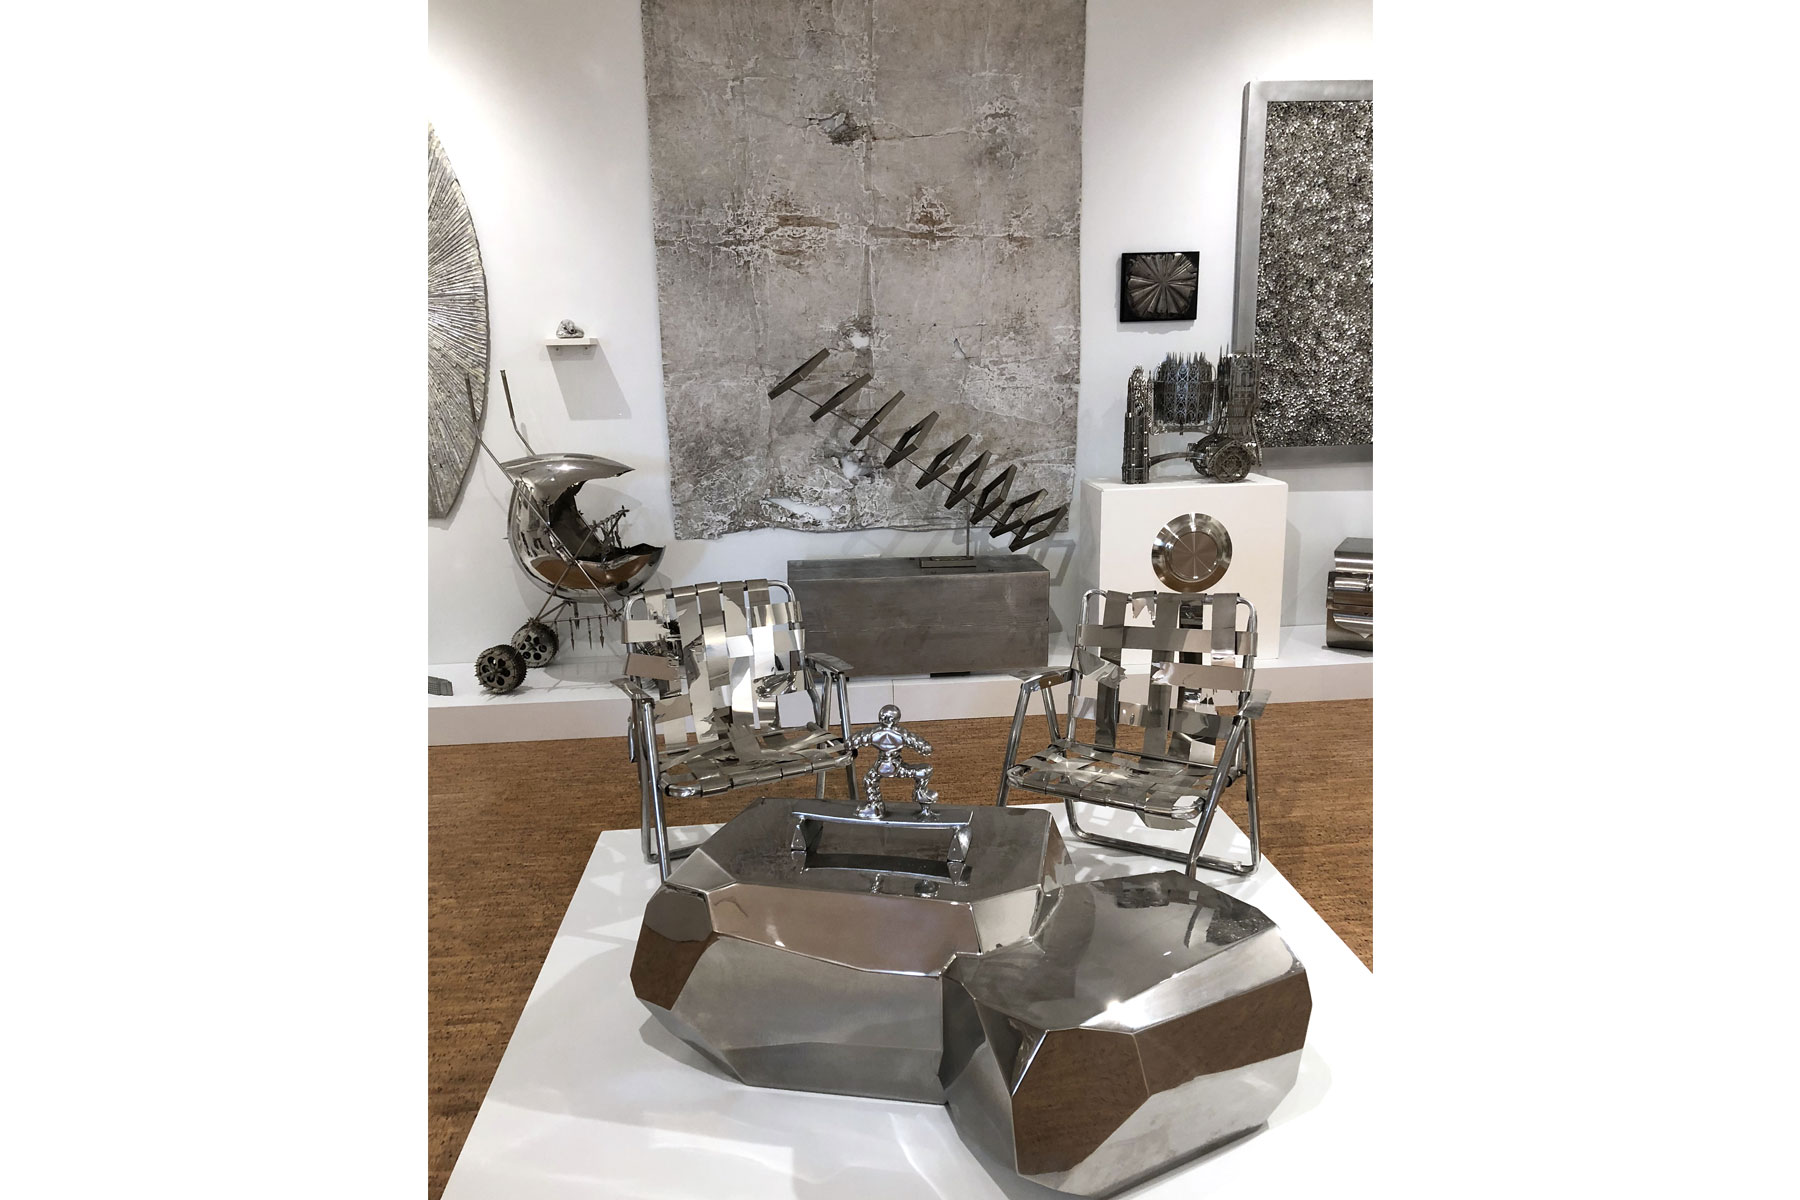 Photograph of a silver-themed artwork installation at The Bunker Artspace, Palm Beach, Florida.